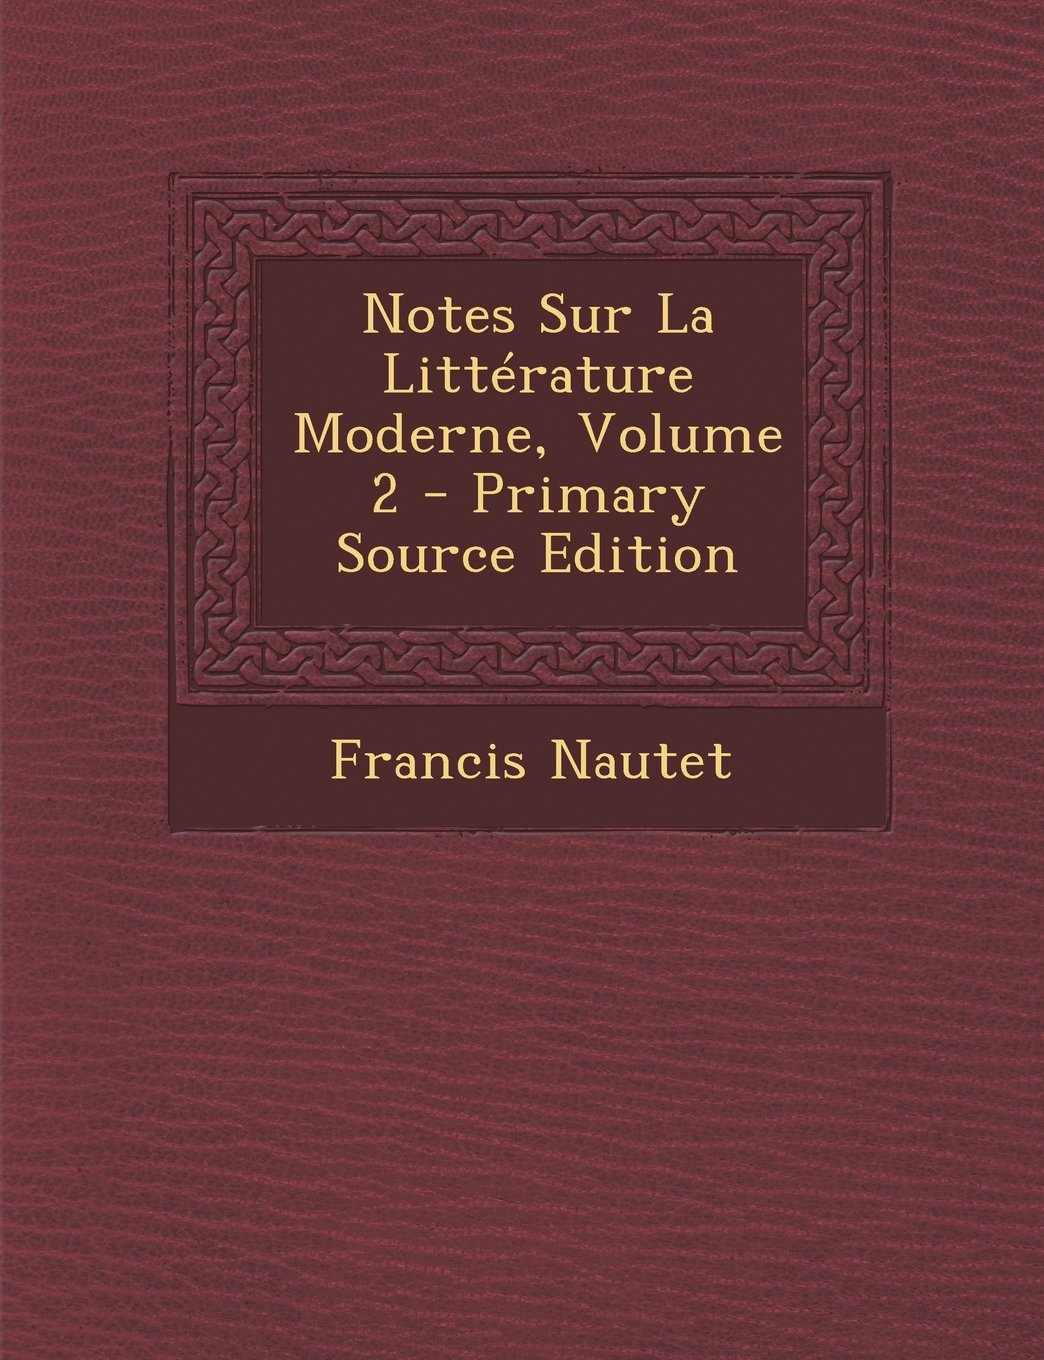 Download Notes Sur La Litterature Moderne, Volume 2 - Primary Source Edition (French Edition) pdf